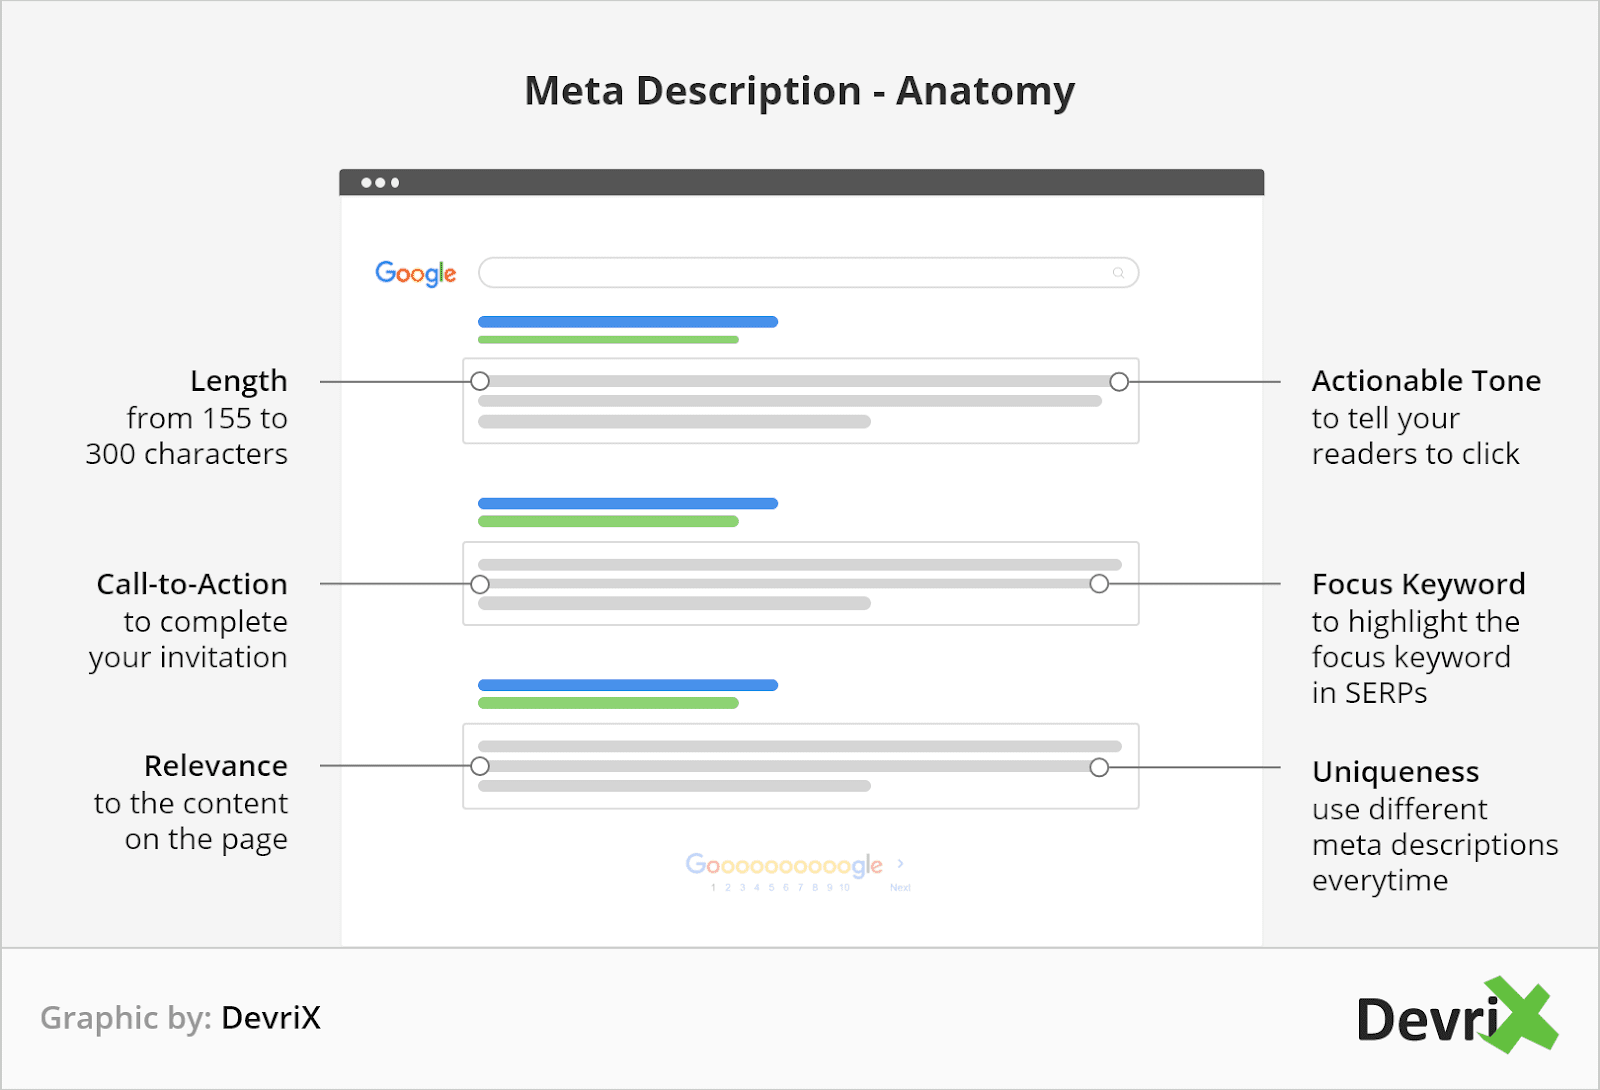 Meta Description Anatomy@2x